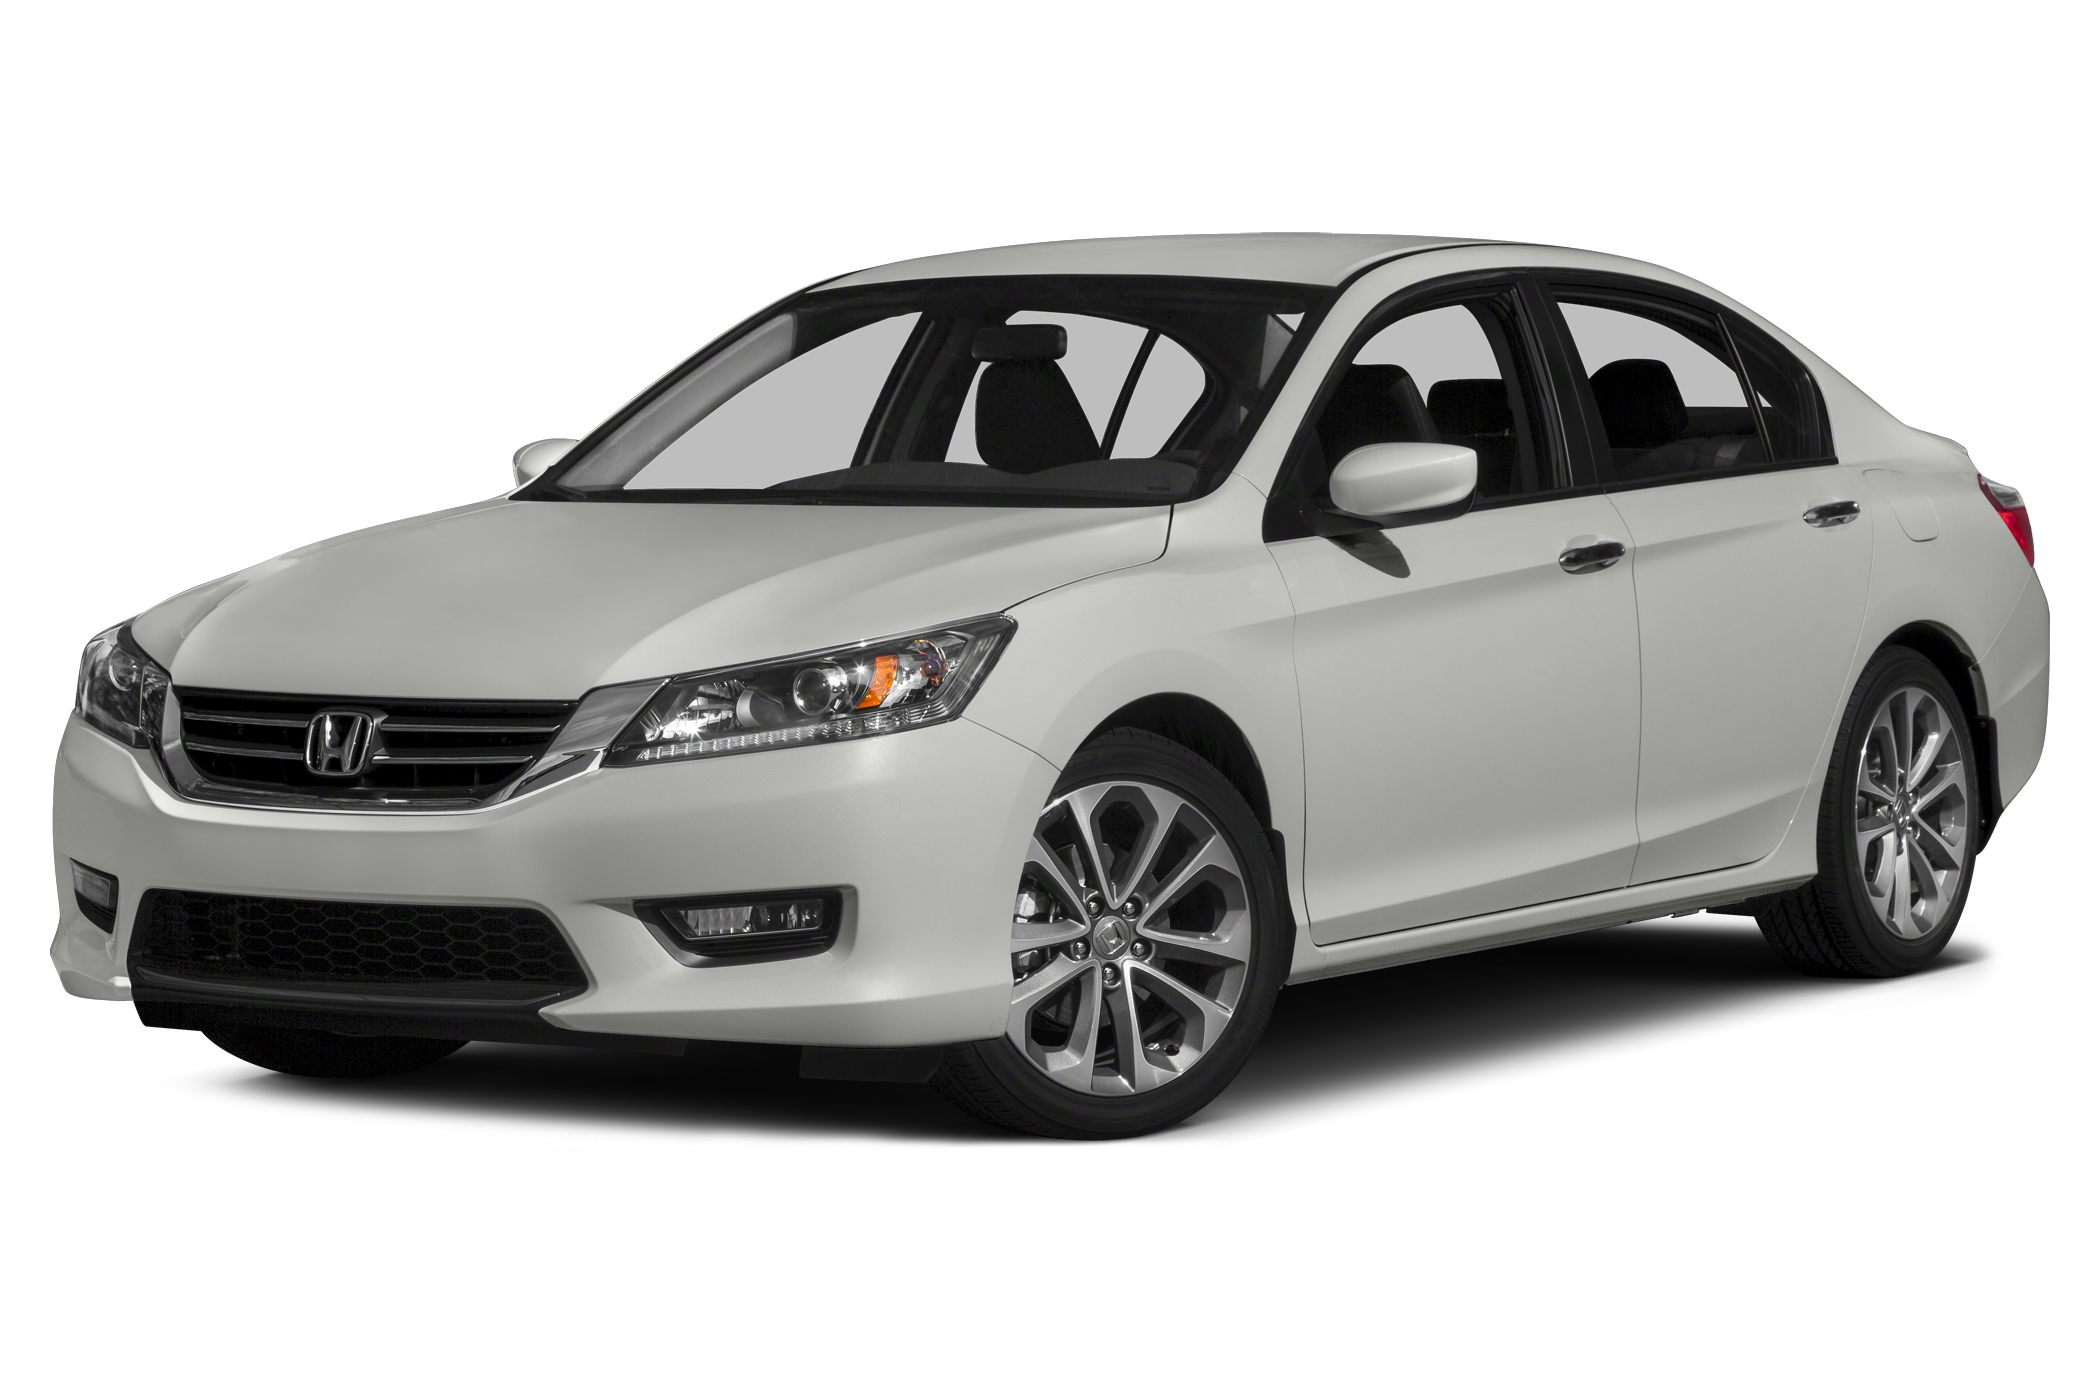 Unique 2015 Honda Accord Vs 2015 toyota Camry